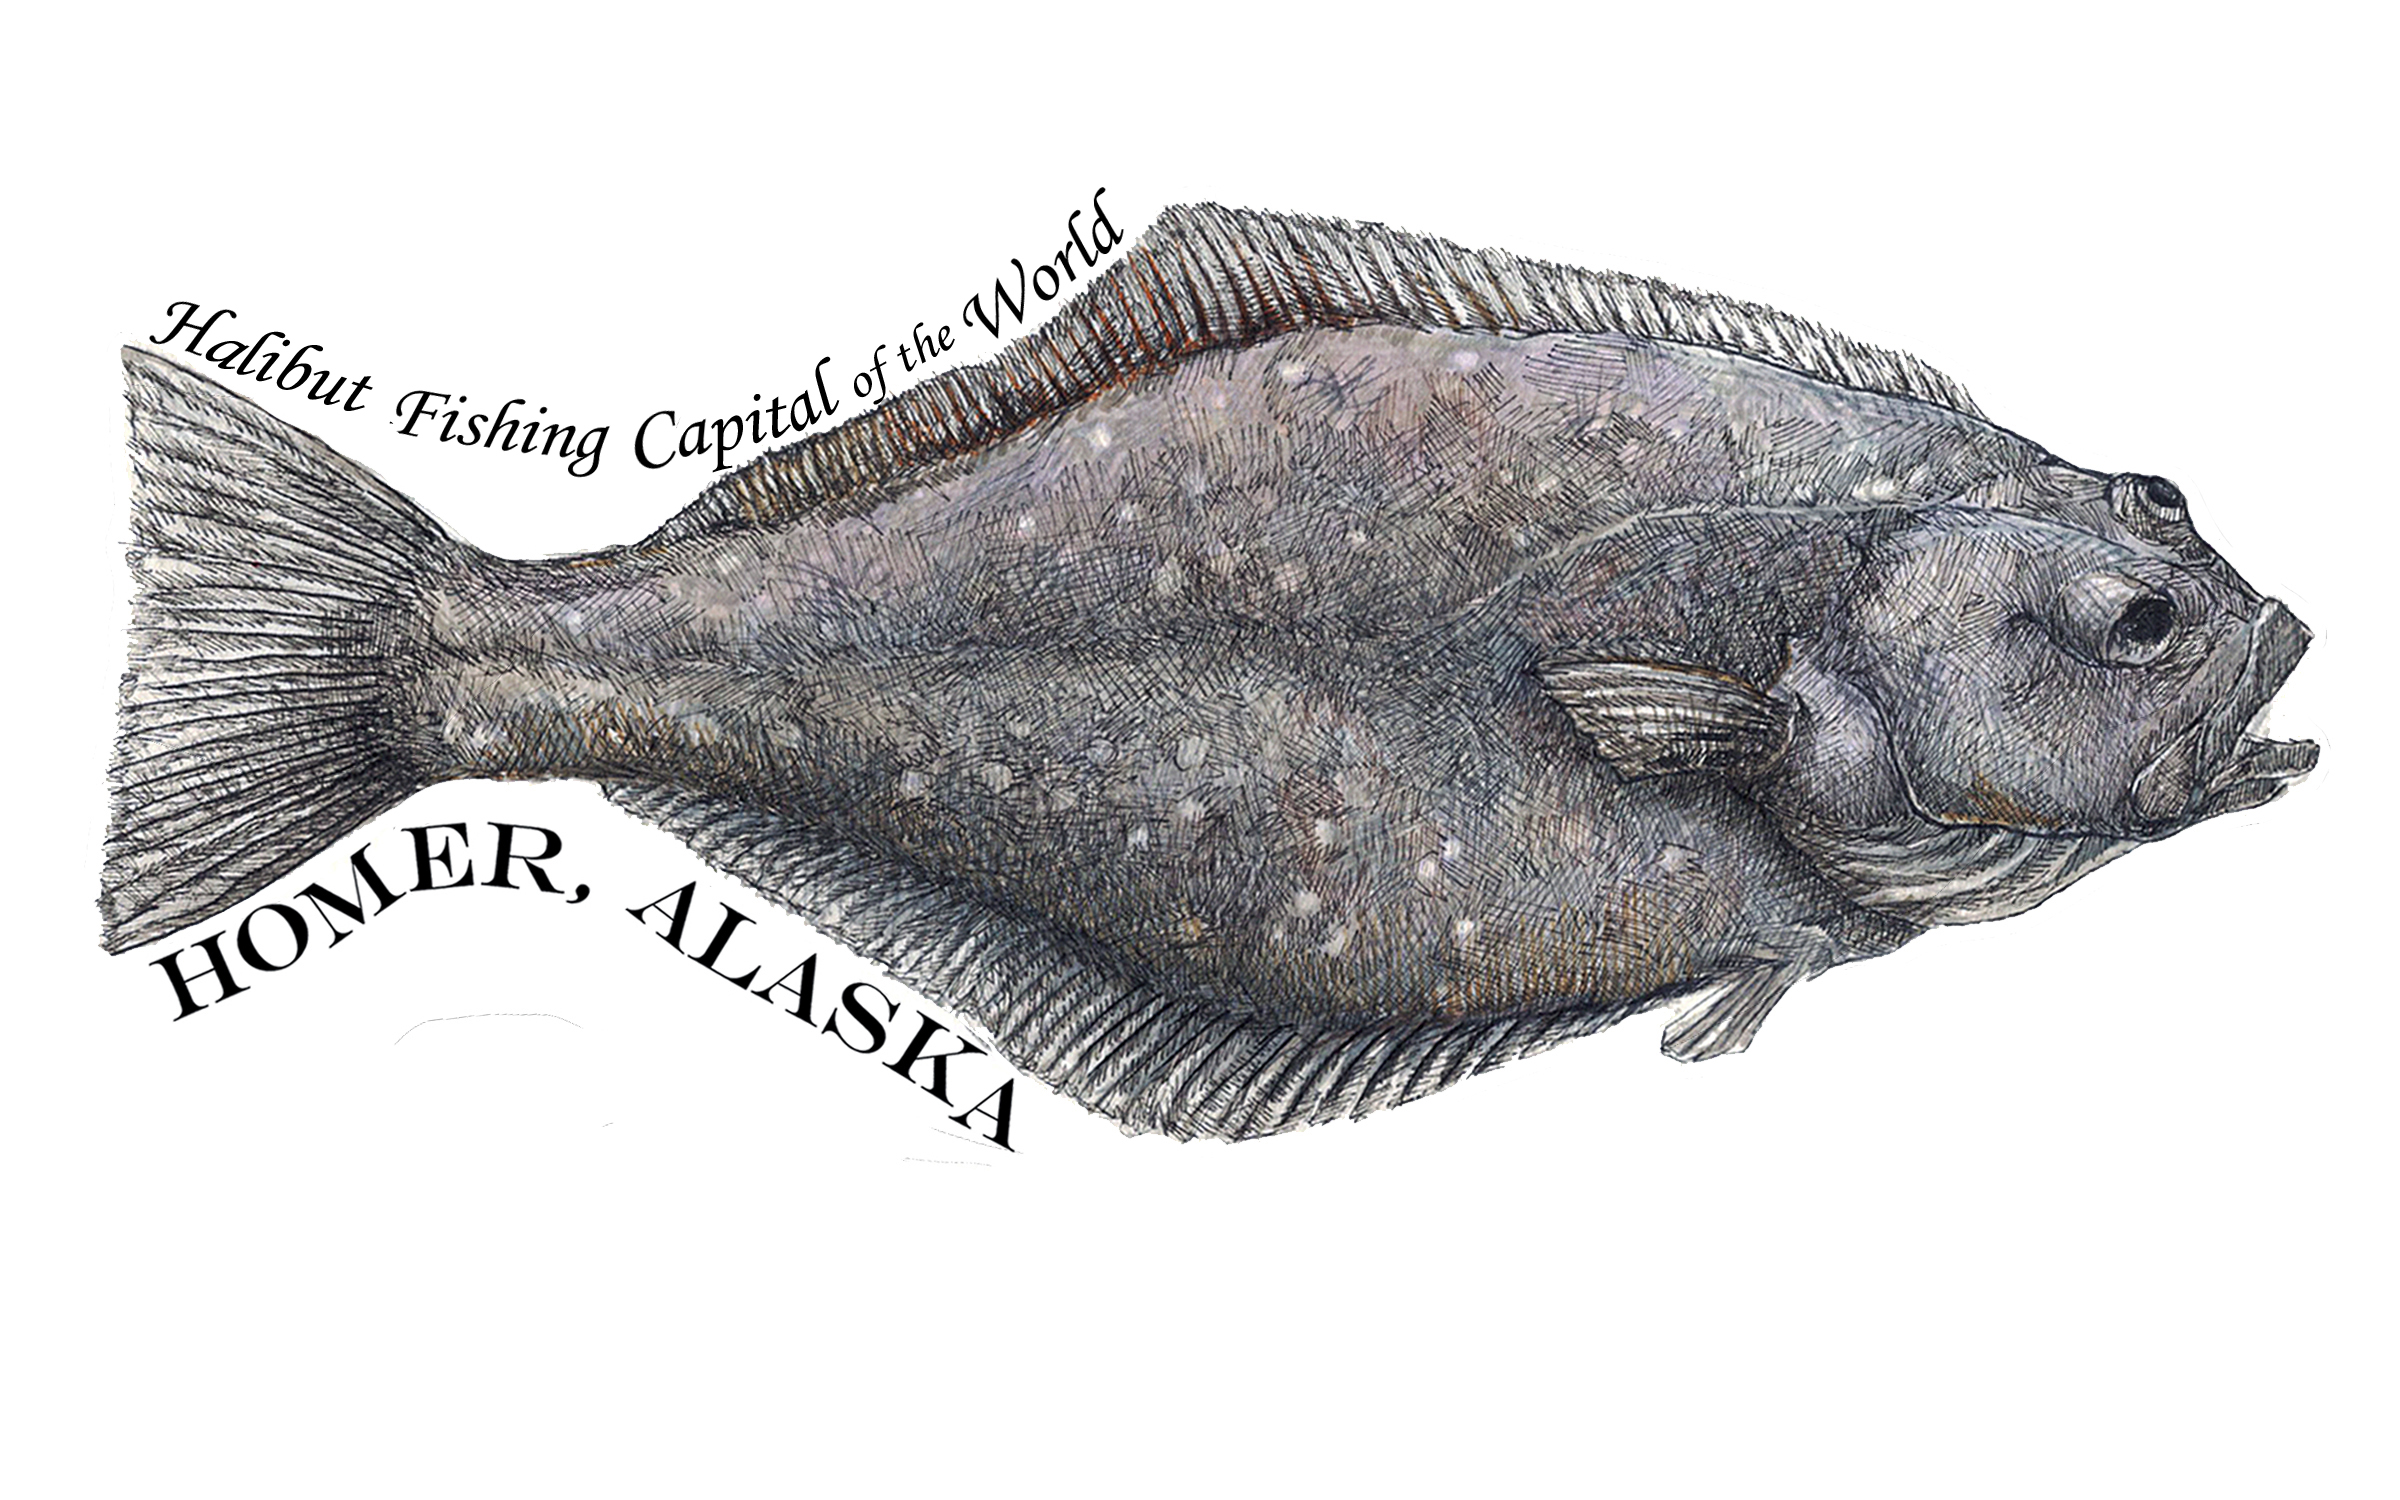 - This halibut was made into a custom sticker for a gift shop in Alaska. The original is pen and ink and marker.